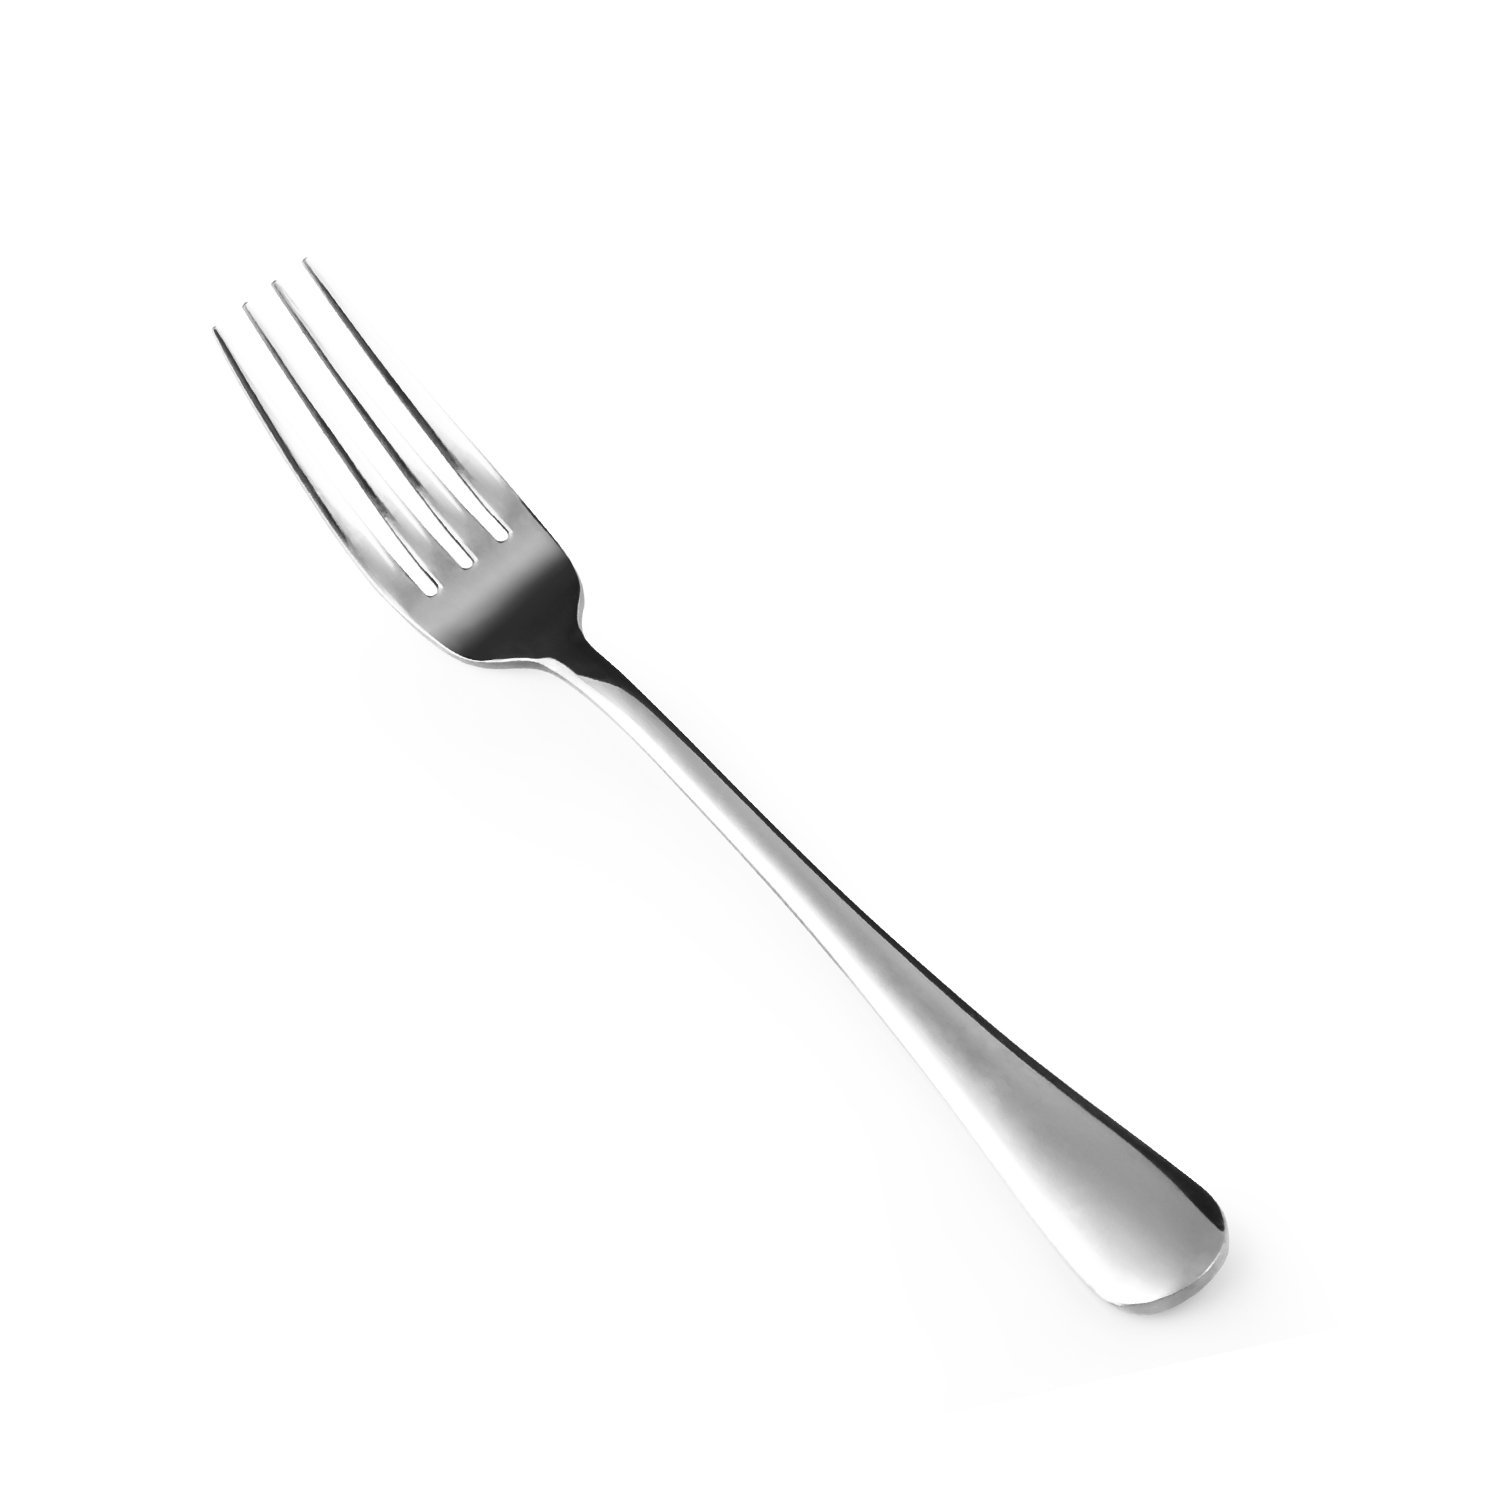 Fine Cutlery Brands Hiware 12 Piece Good Stainless Steel Dinner Forks Cutlery